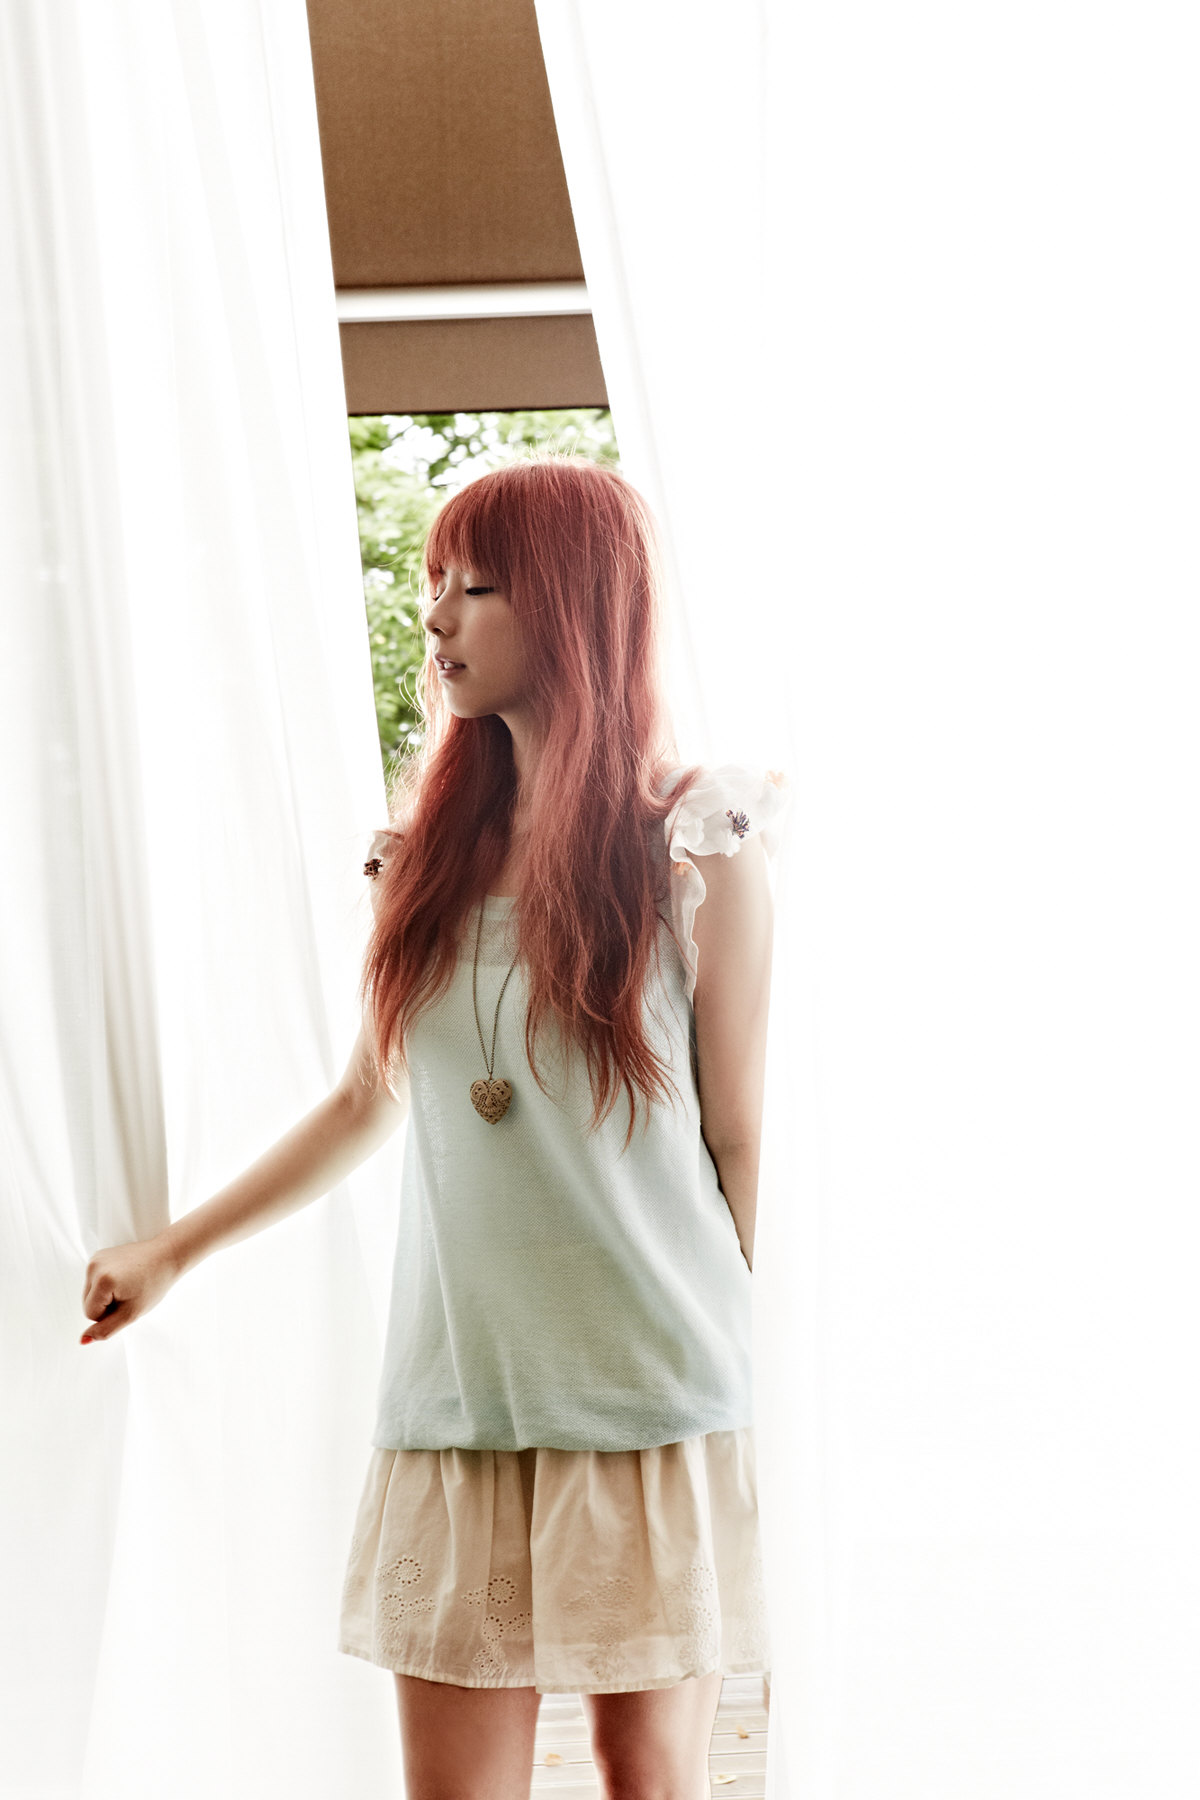 Juniel - The next day (audio + picture)